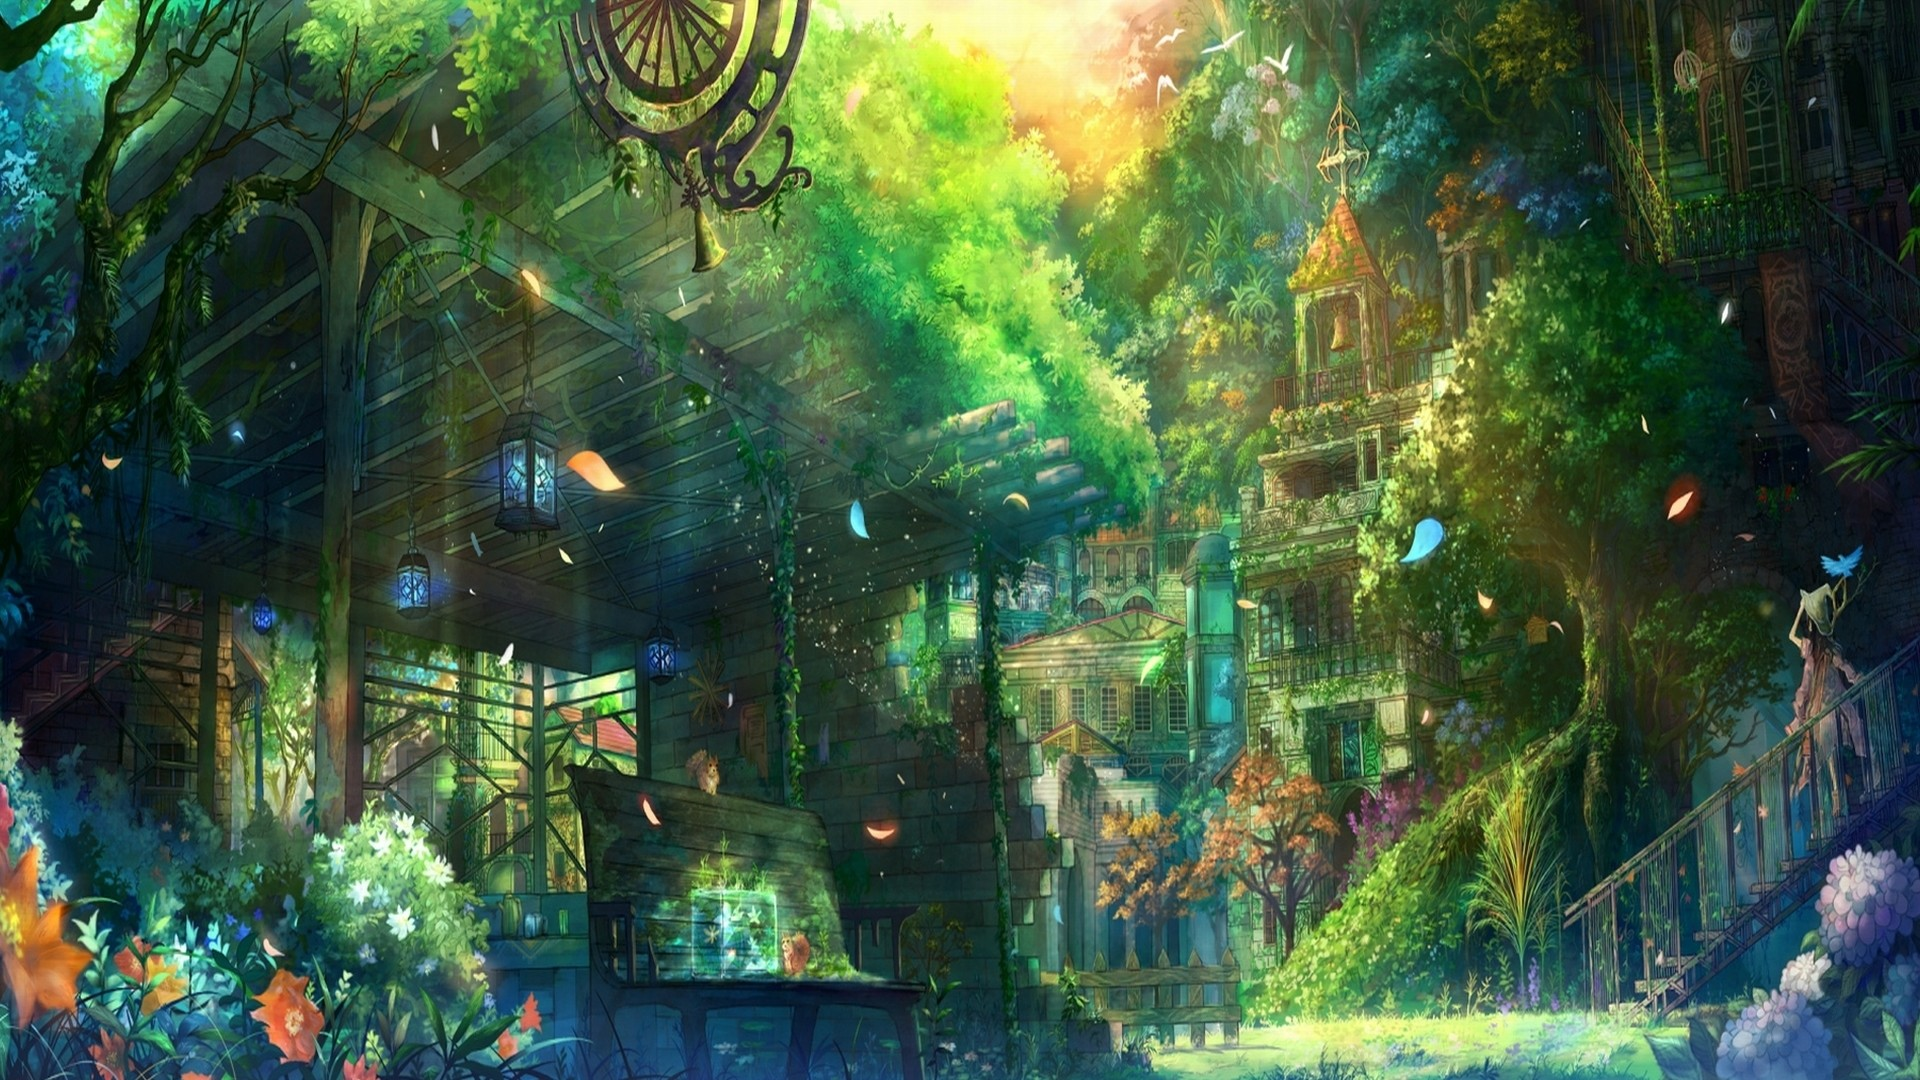 1920x1080 The 25 Best Hd Anime Wallpapers Ideas On Pinterest